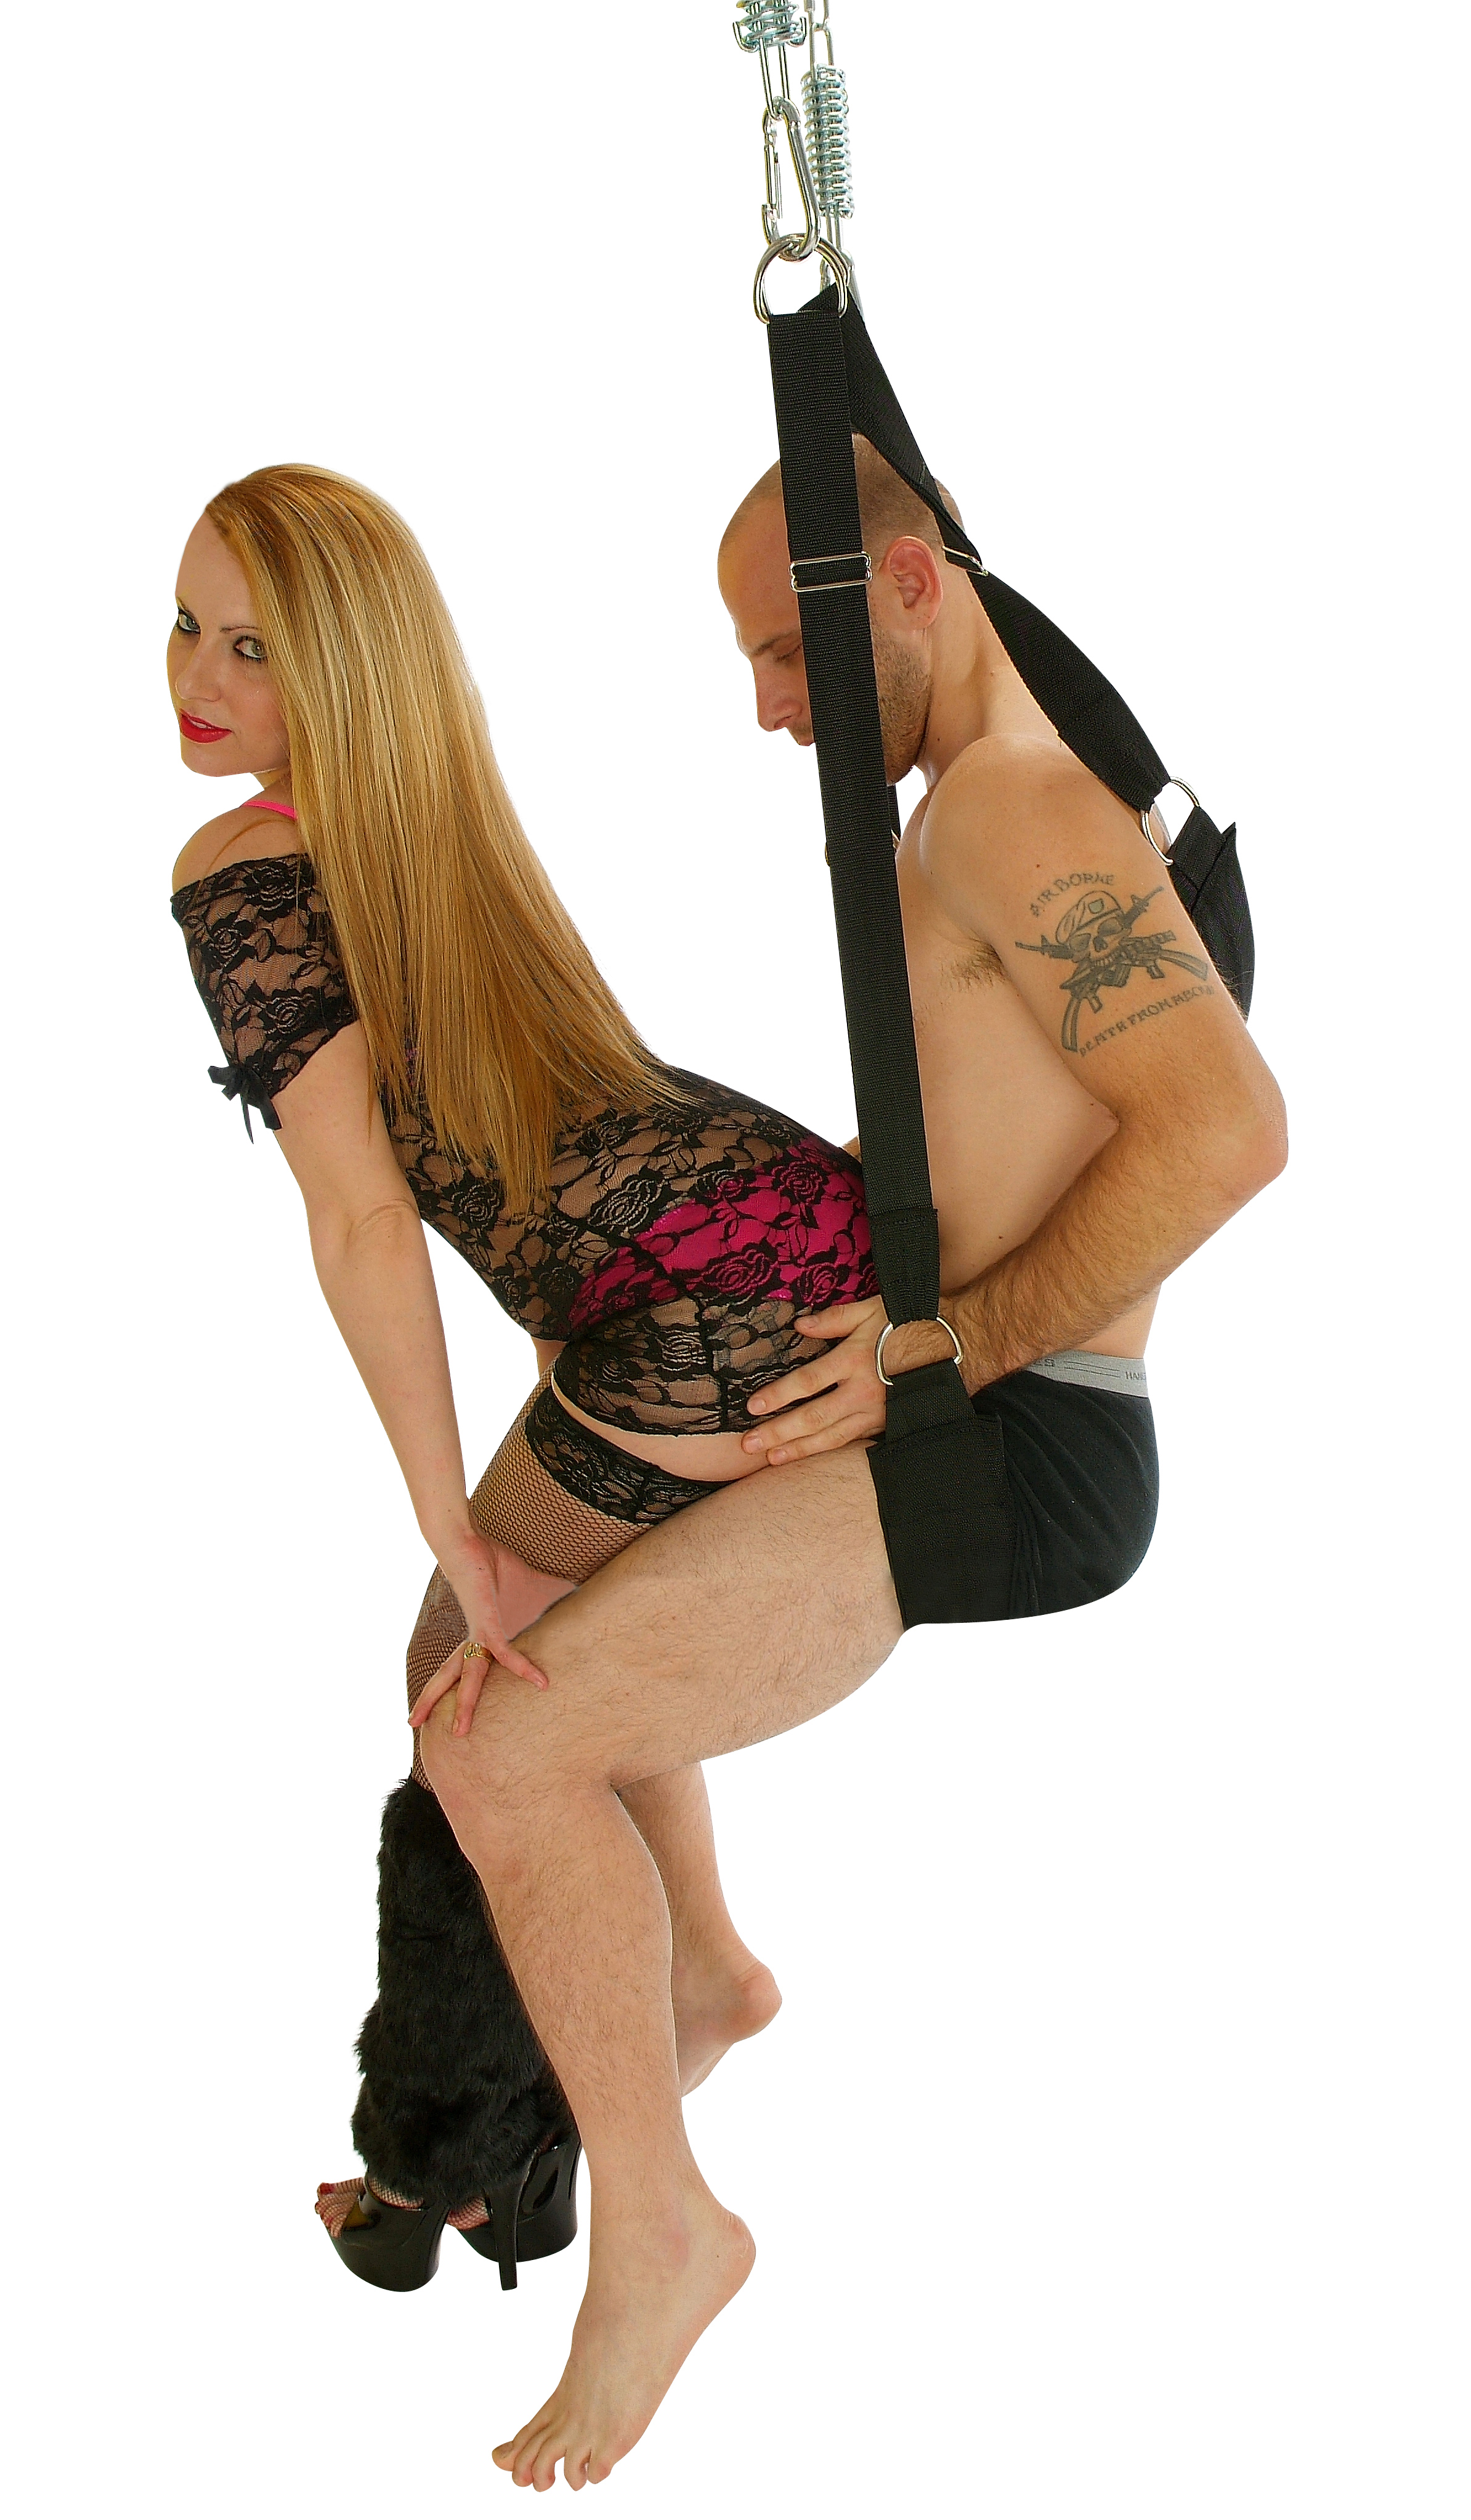 Will order love positions for sex swings opinion